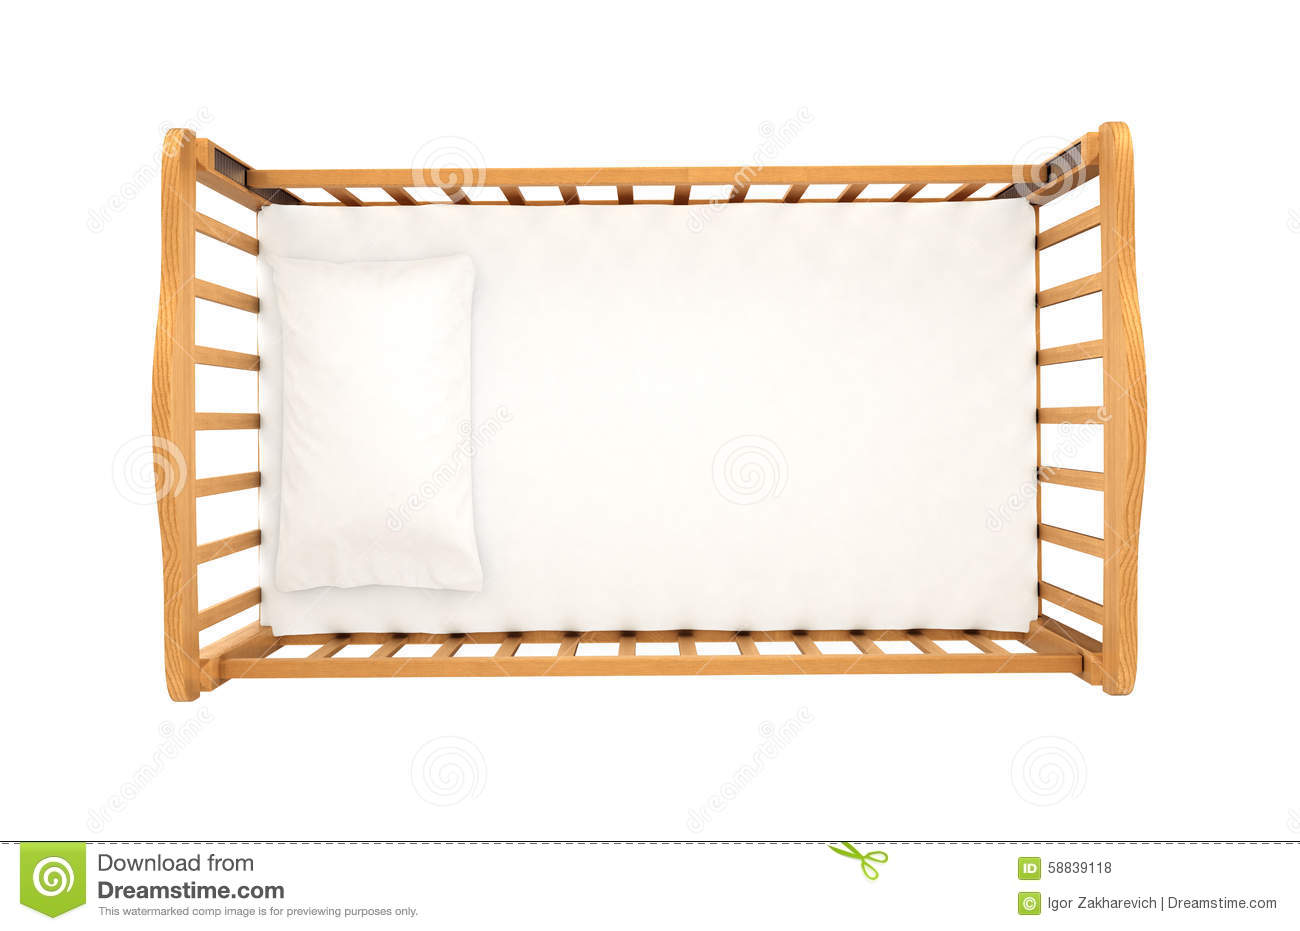 Free Wooden Baby Cot Plans | Woodworking Service Online